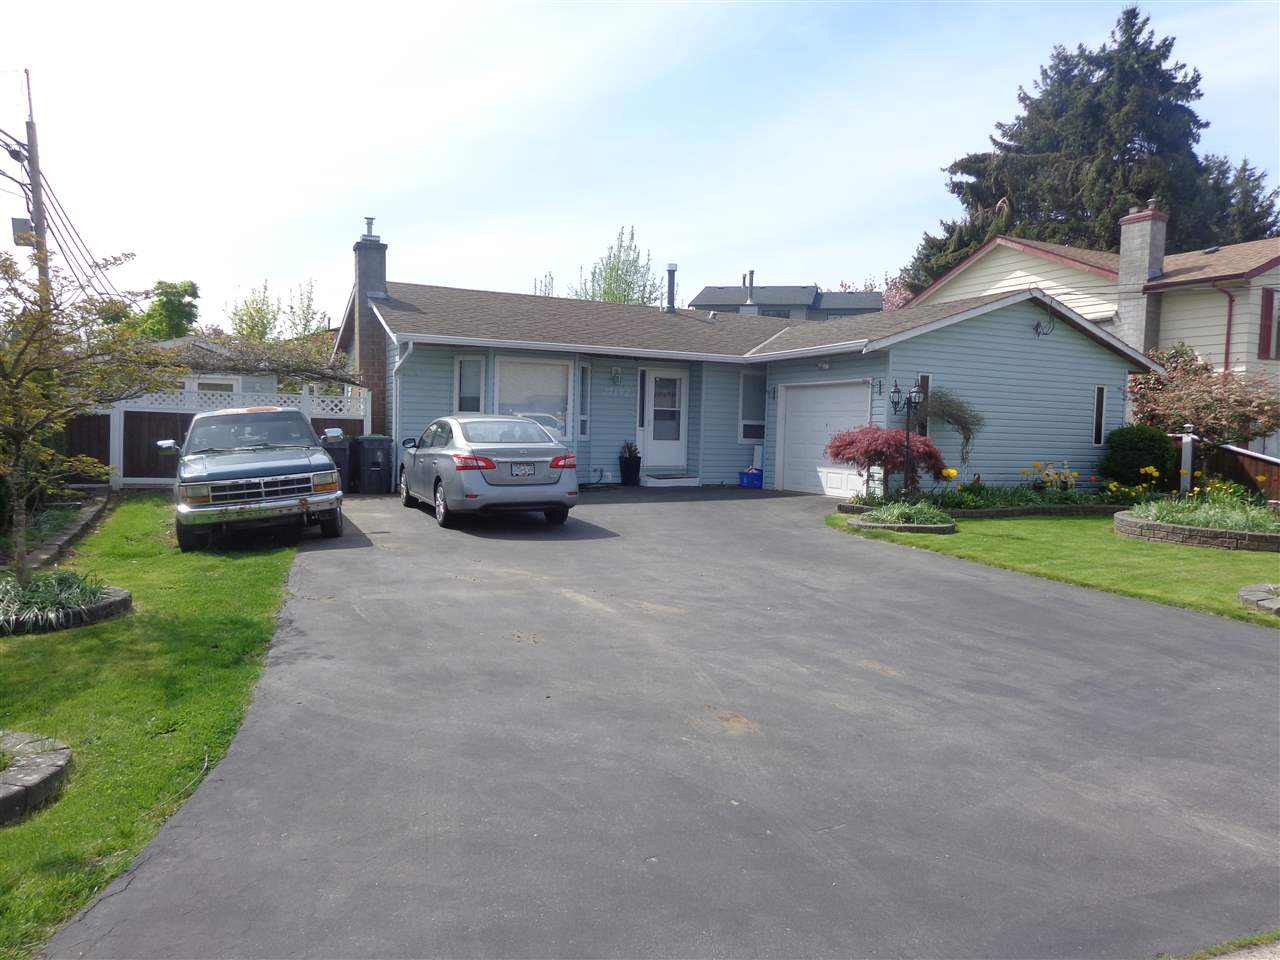 27192 34 AVENUE, 3 bed, 1 bath, at $699,900